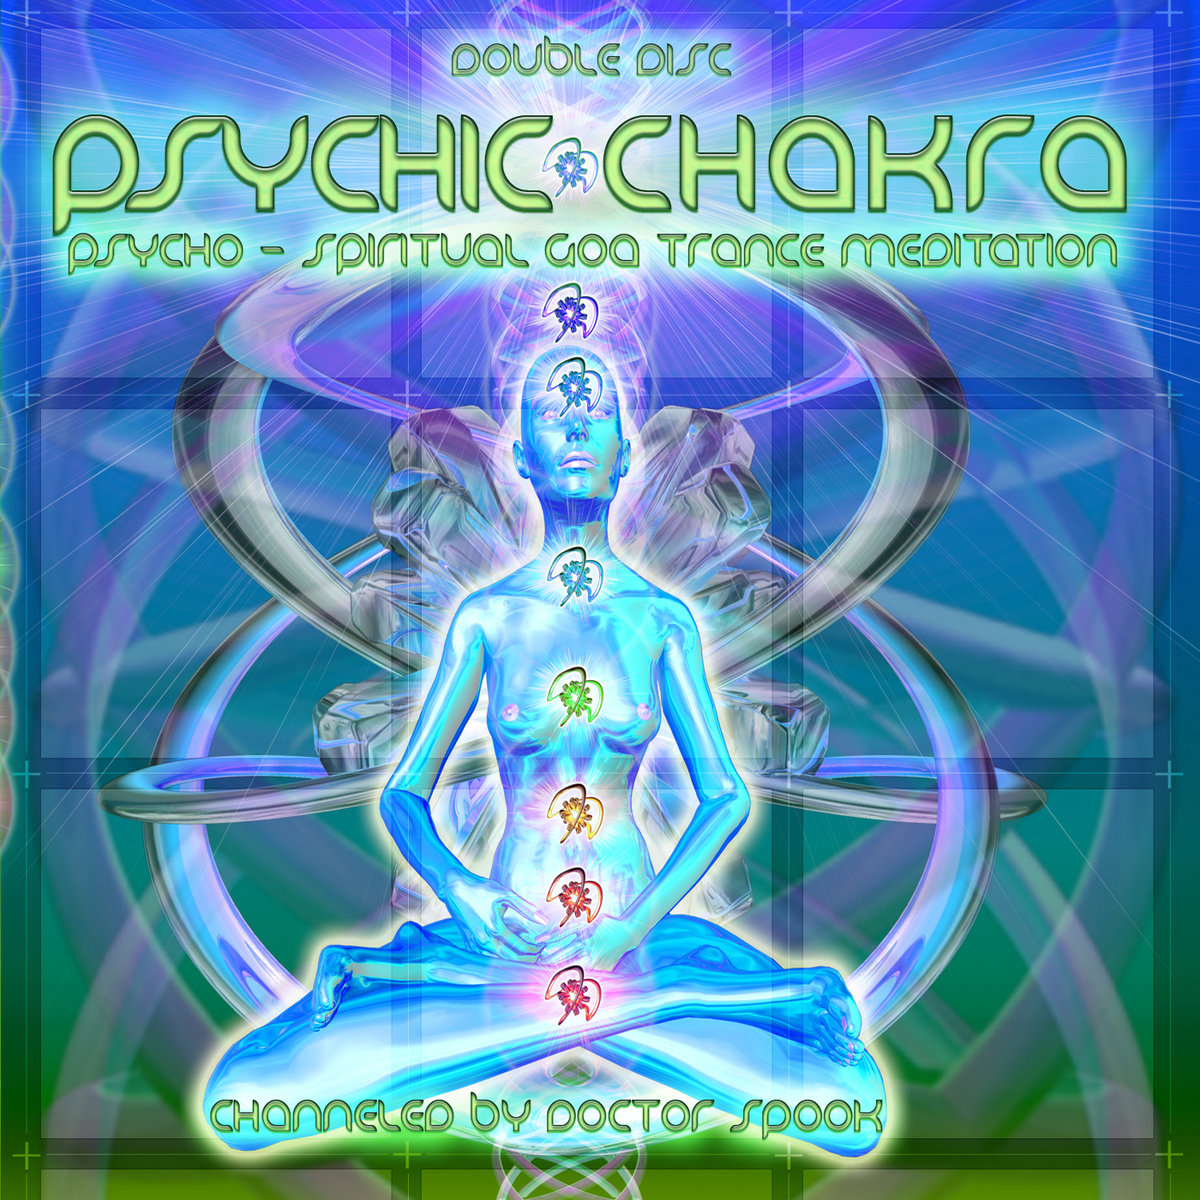 Virtual Light - Nuclear Sun @ 'Various Artists - Psychic Chakra (Channeled by Dr. Spook)' album (electronic, psychic chakra)